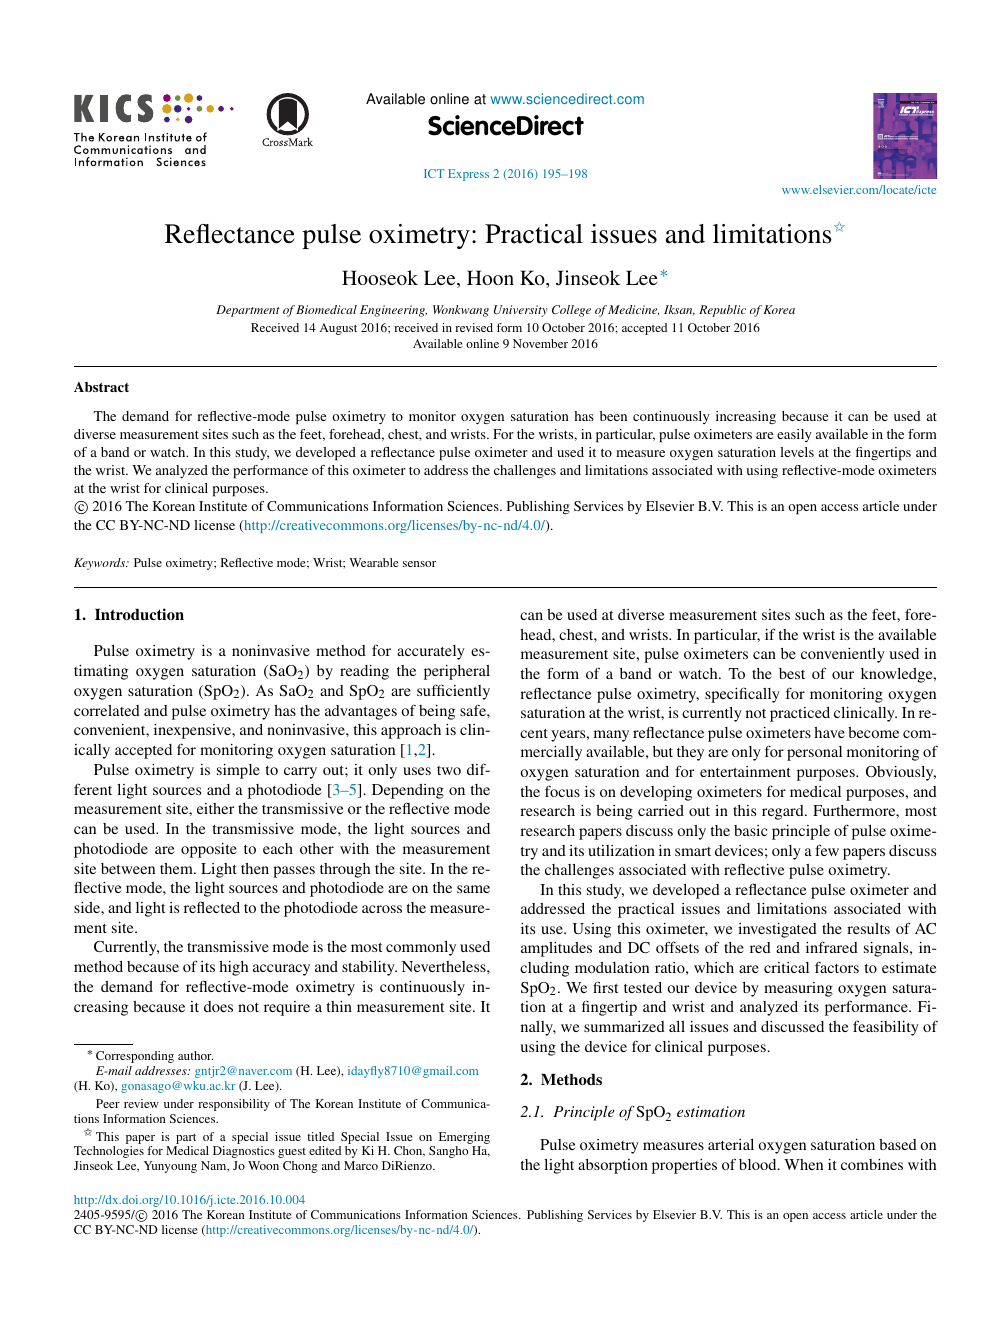 Reflectance pulse oximetry: Practical issues and limitations – topic